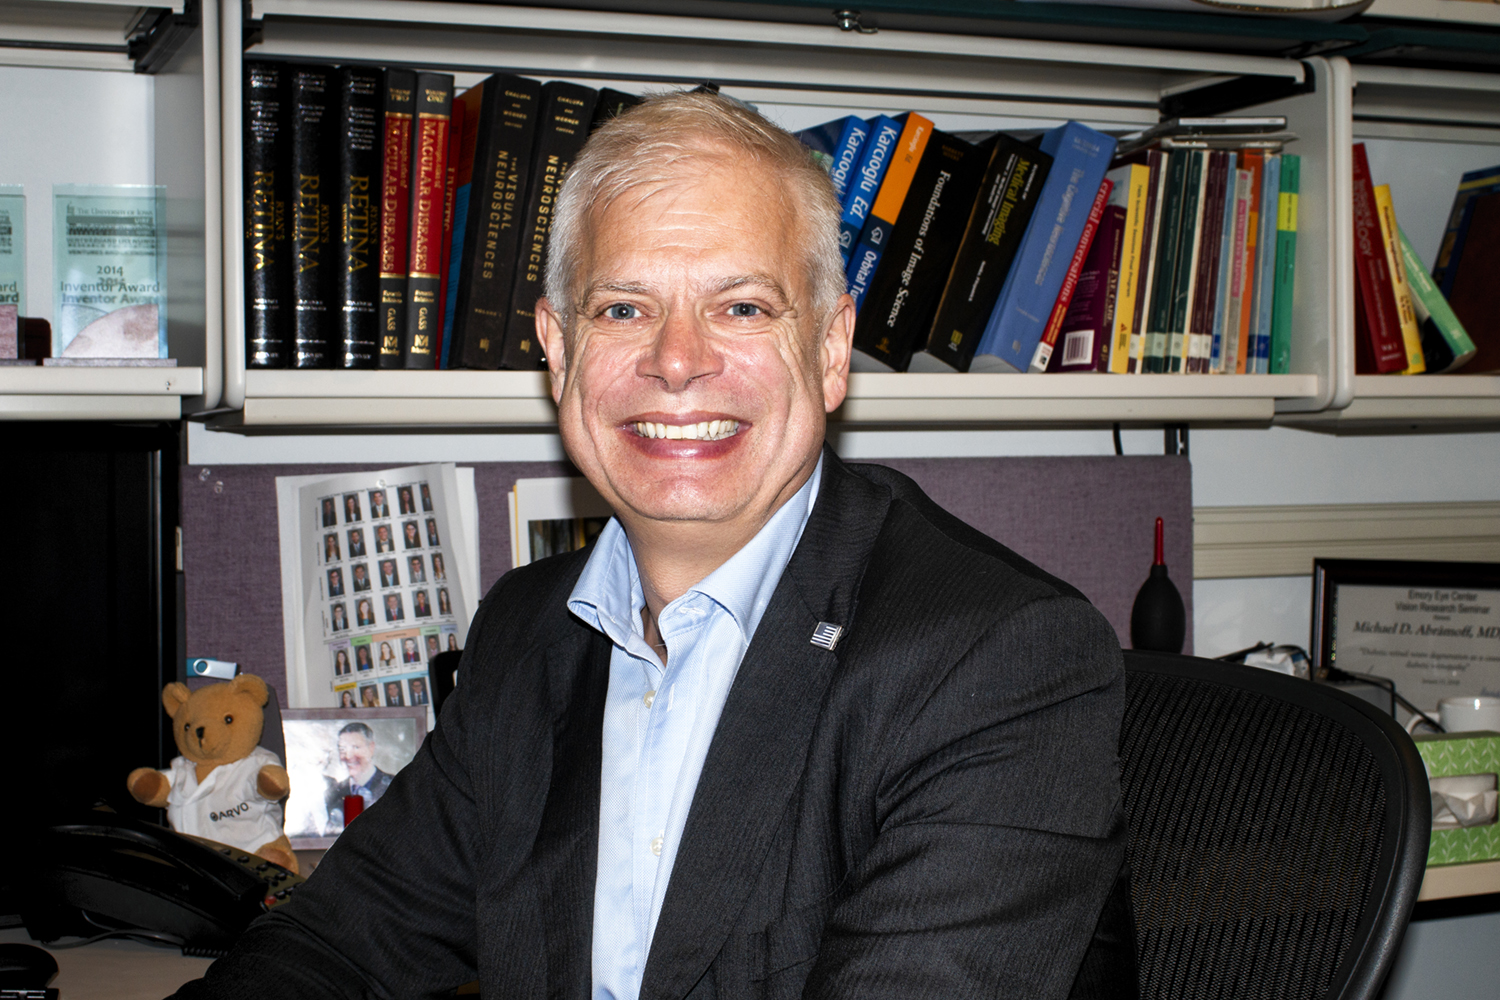 UI Professor Michael Abramoff sits for a portrait in the UIHC Pomerantz Family Pavilion on Aug. 29. Abramoff founded the IDx company to create IDx-DR, a technology used to detect diabetic retinopathy.